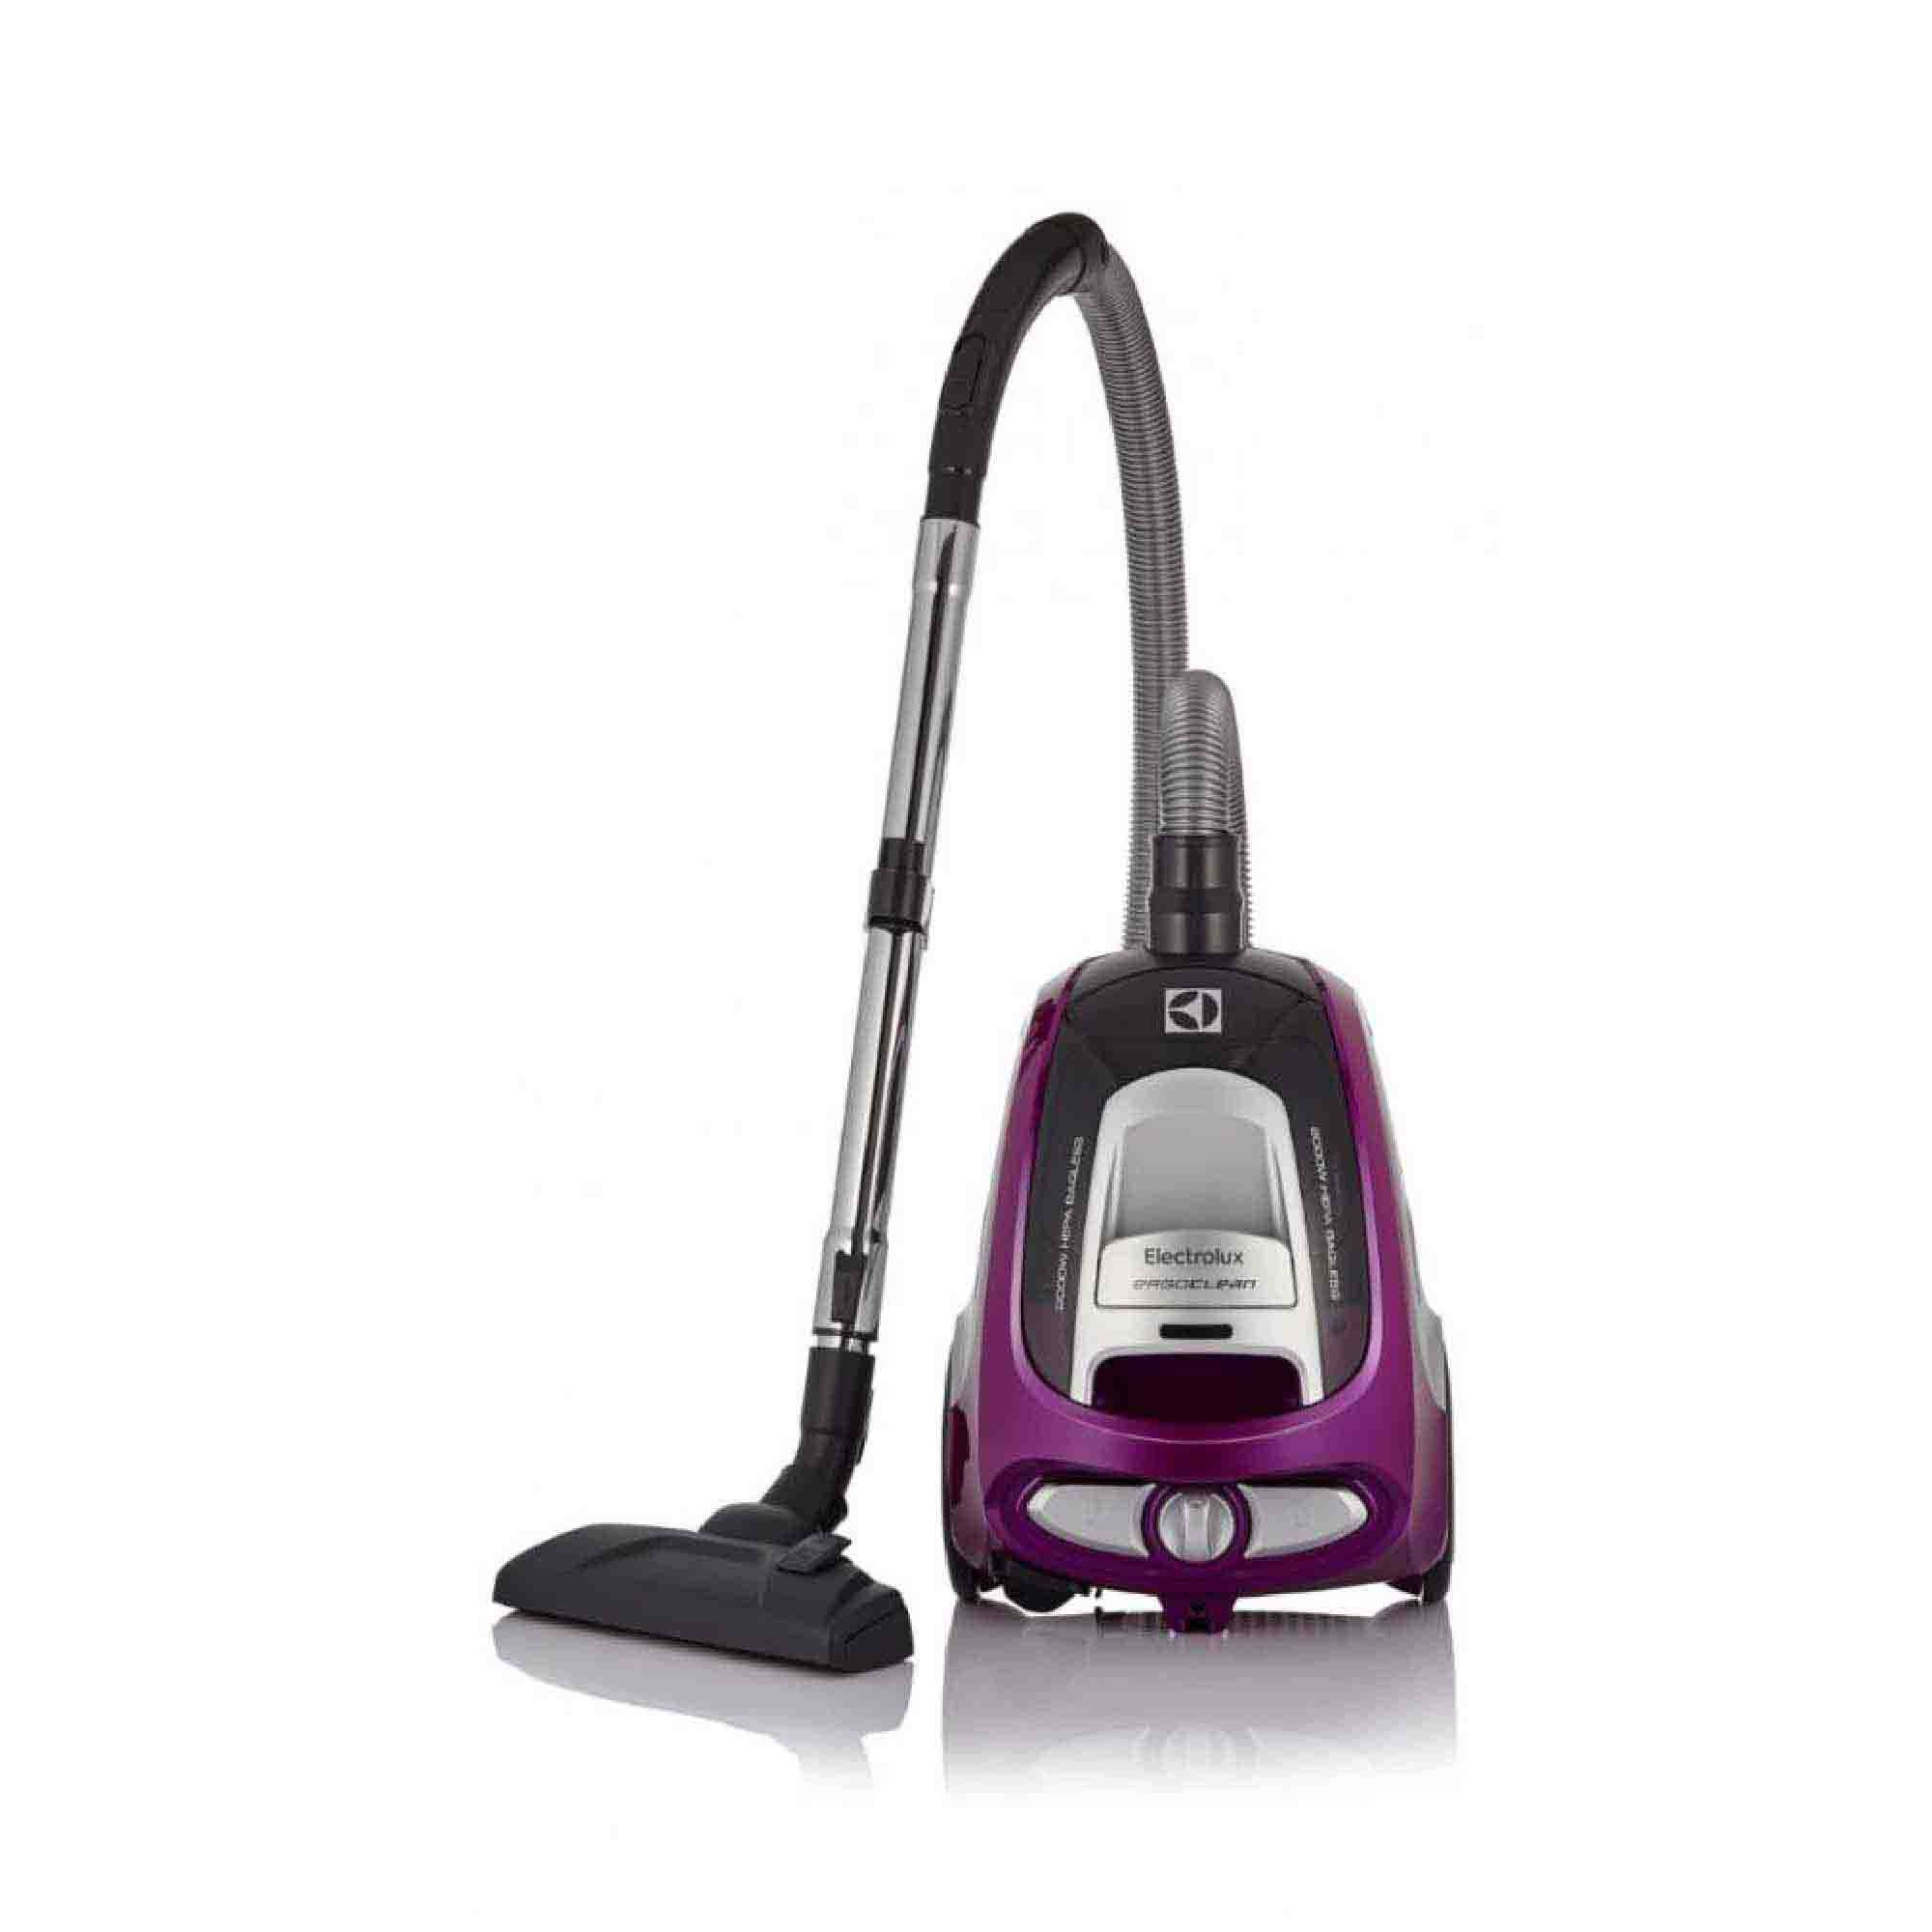 hight resolution of electrolux vacuum cleaner zve4110fl 2000w bagless hepa 10